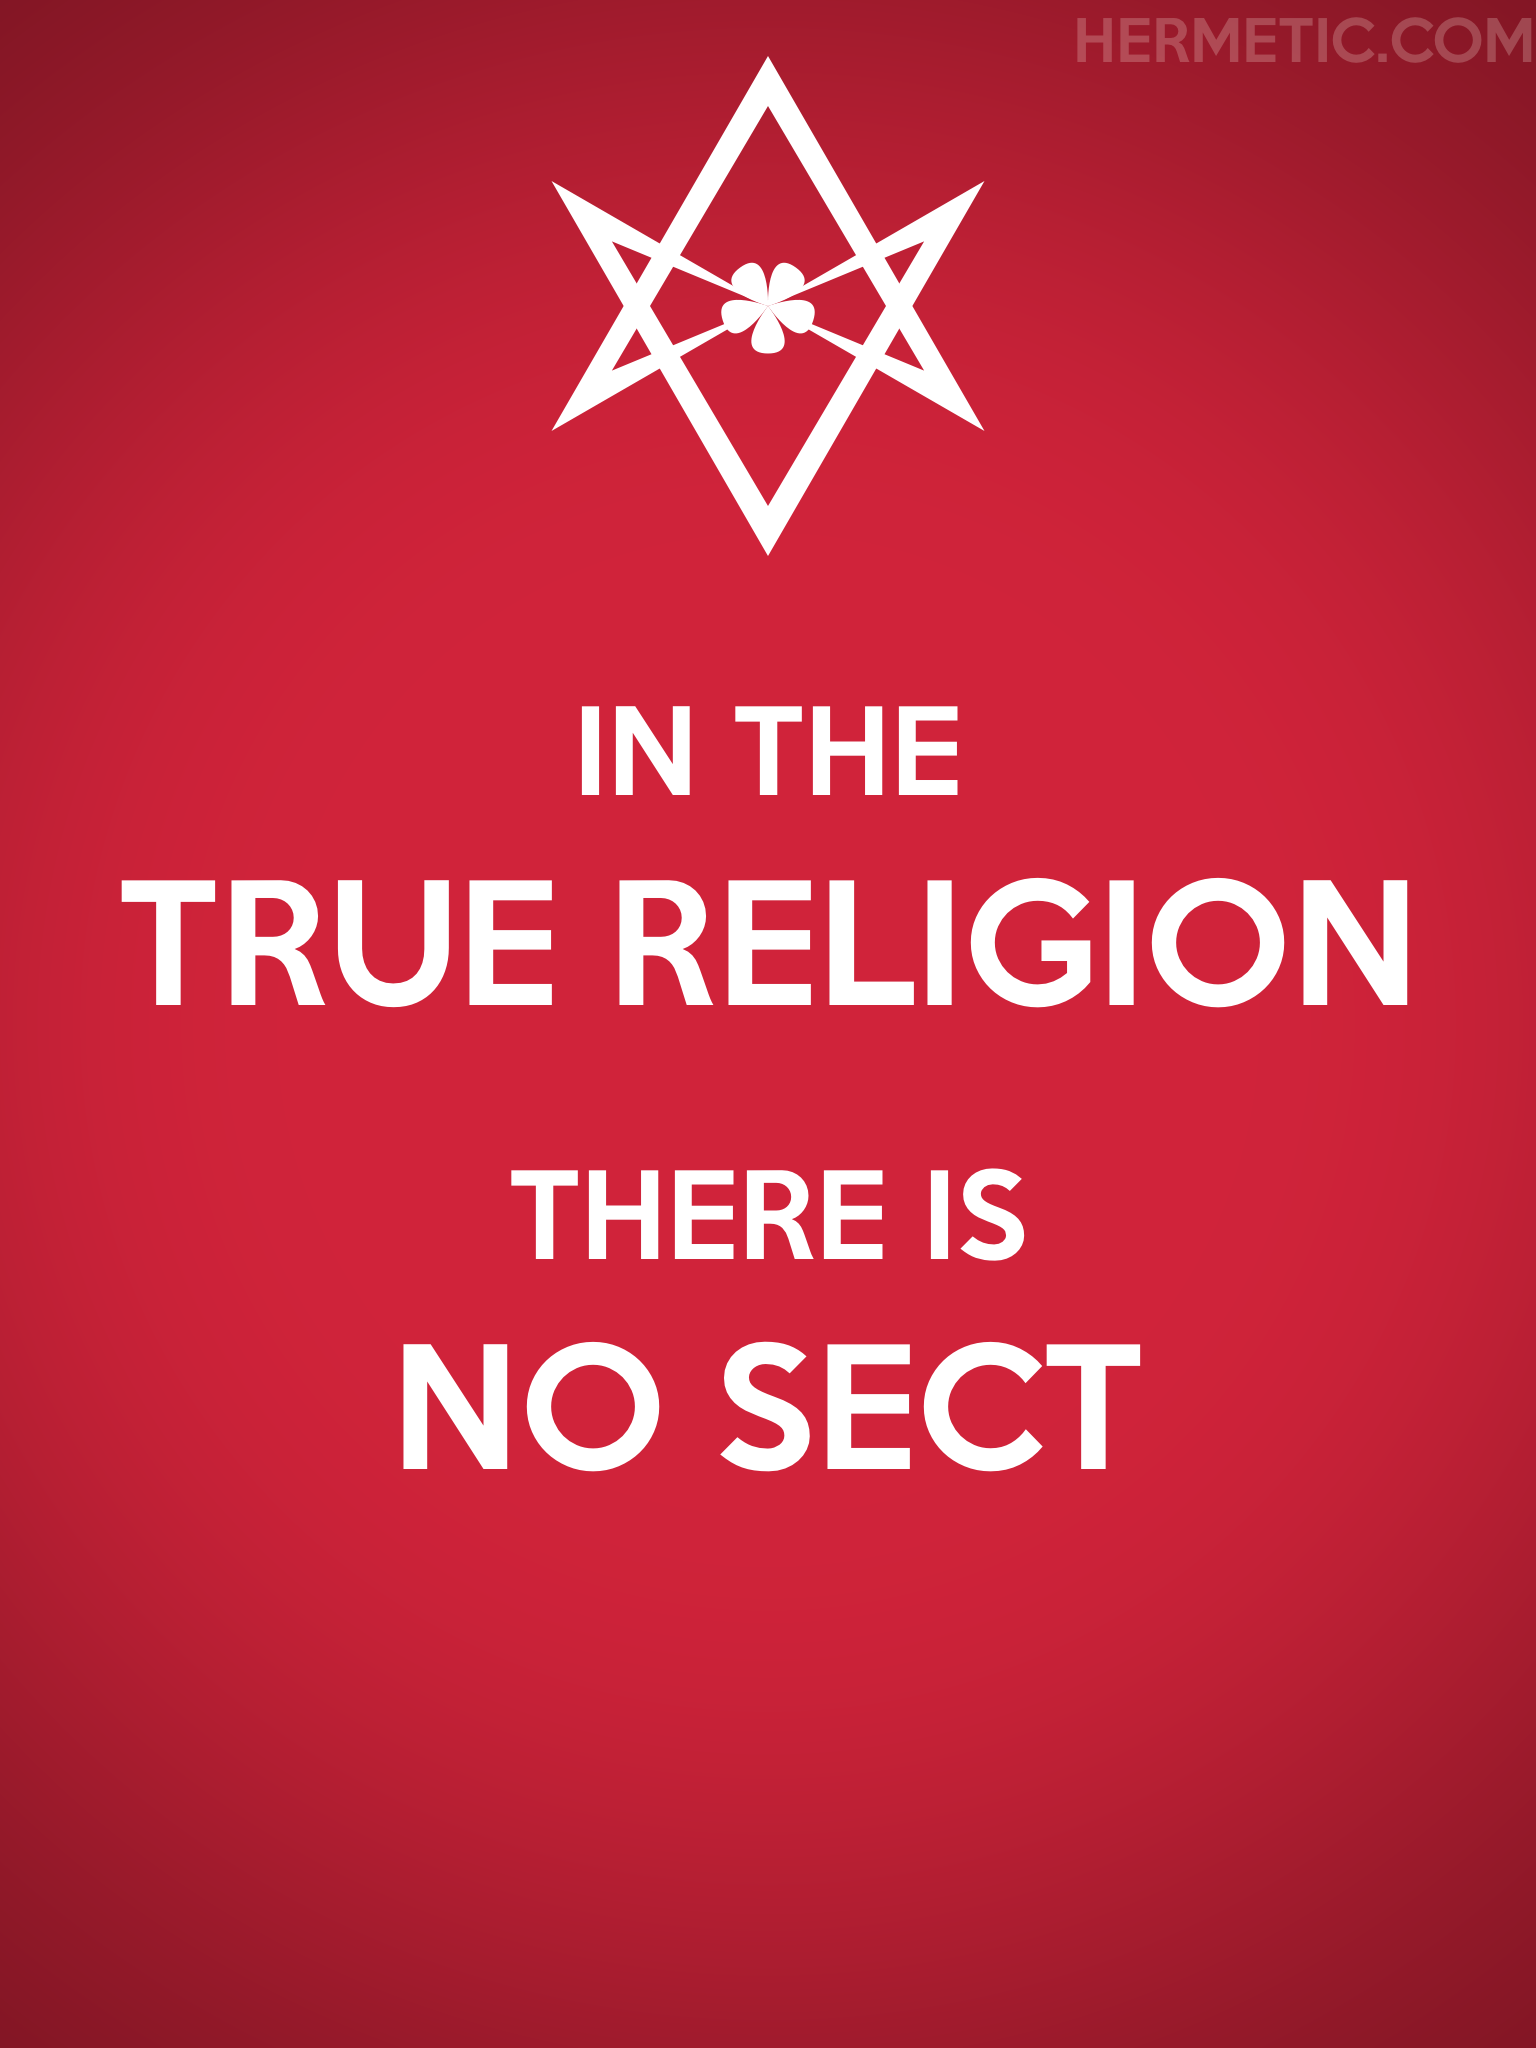 Unicursal TRUE RELIGION NO SECT Propaganda Poster from Hermetic Library Office of the Ministry of Information